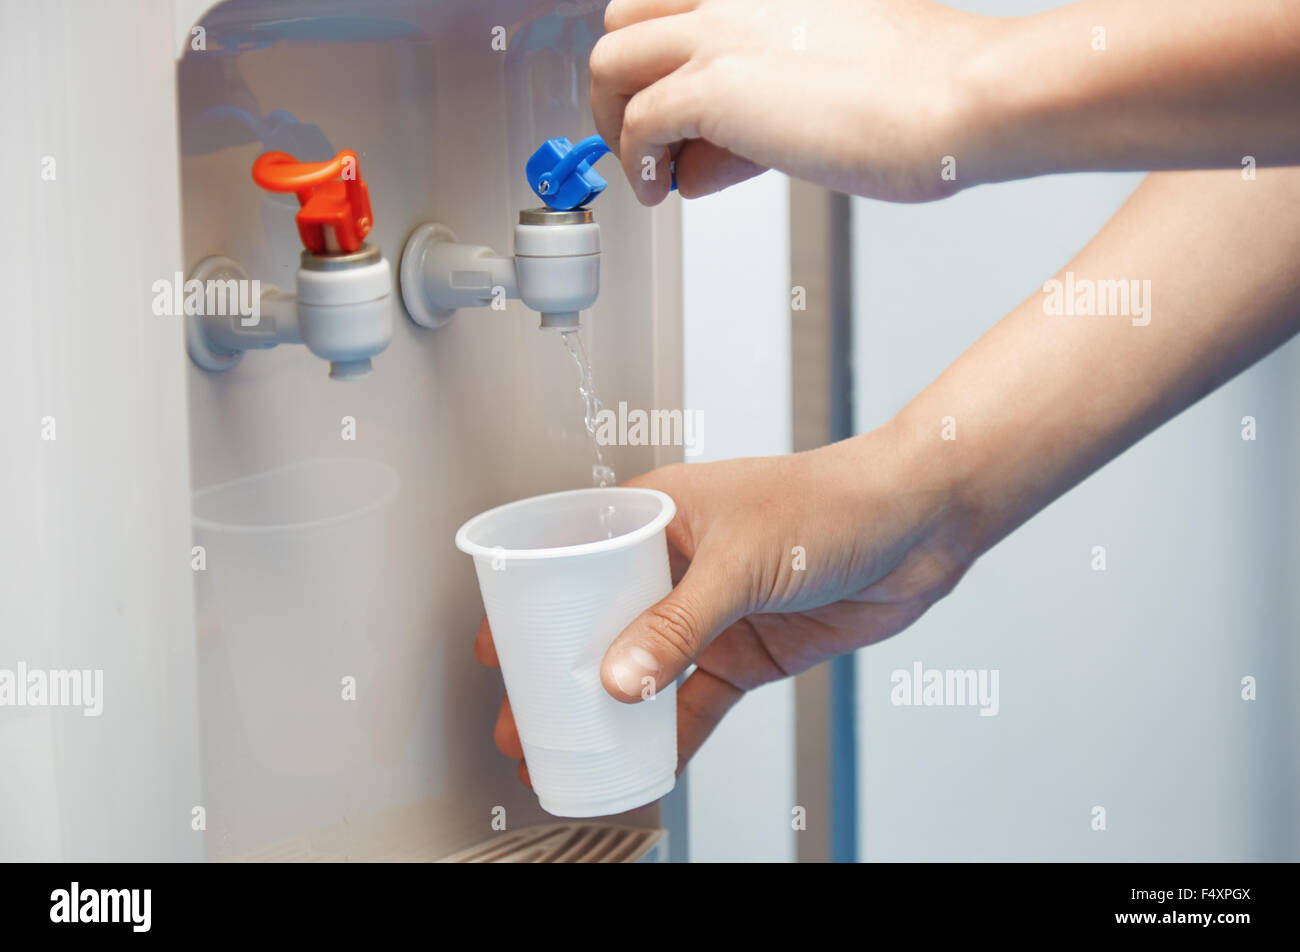 Man filling plastic cup at water cooler - Stock Image